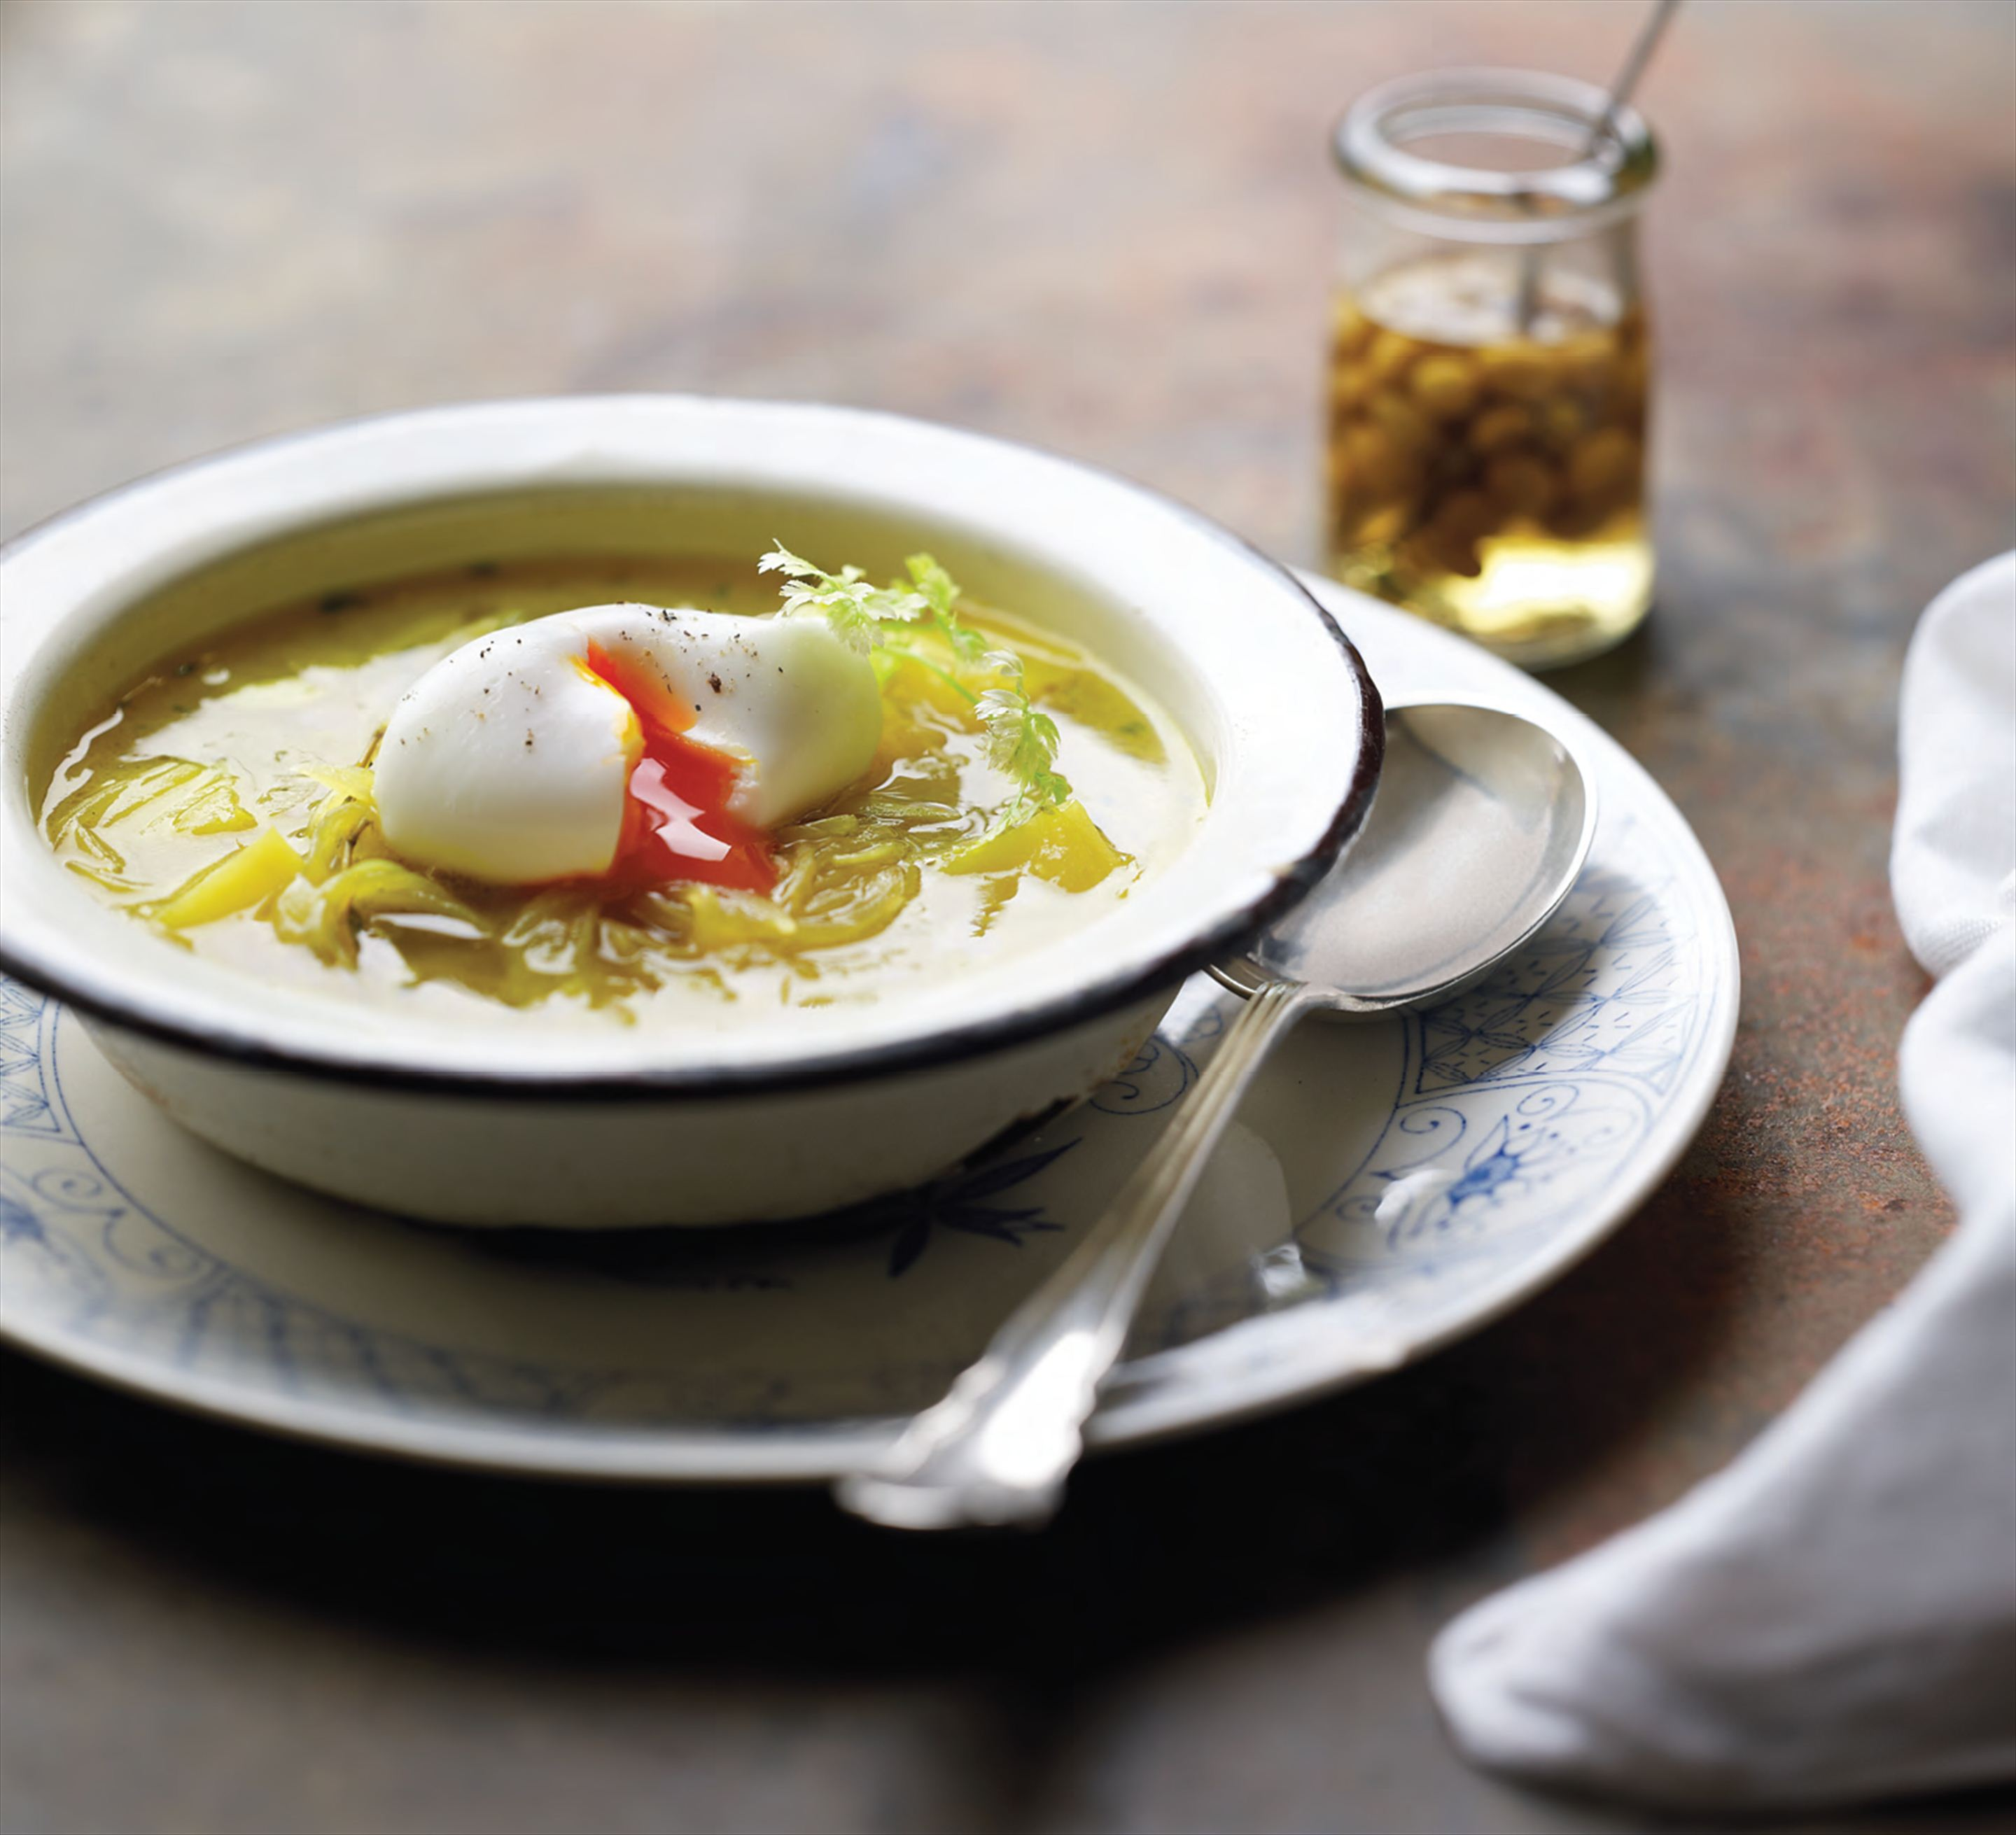 Persepolis onion soup with soft-poached eggs